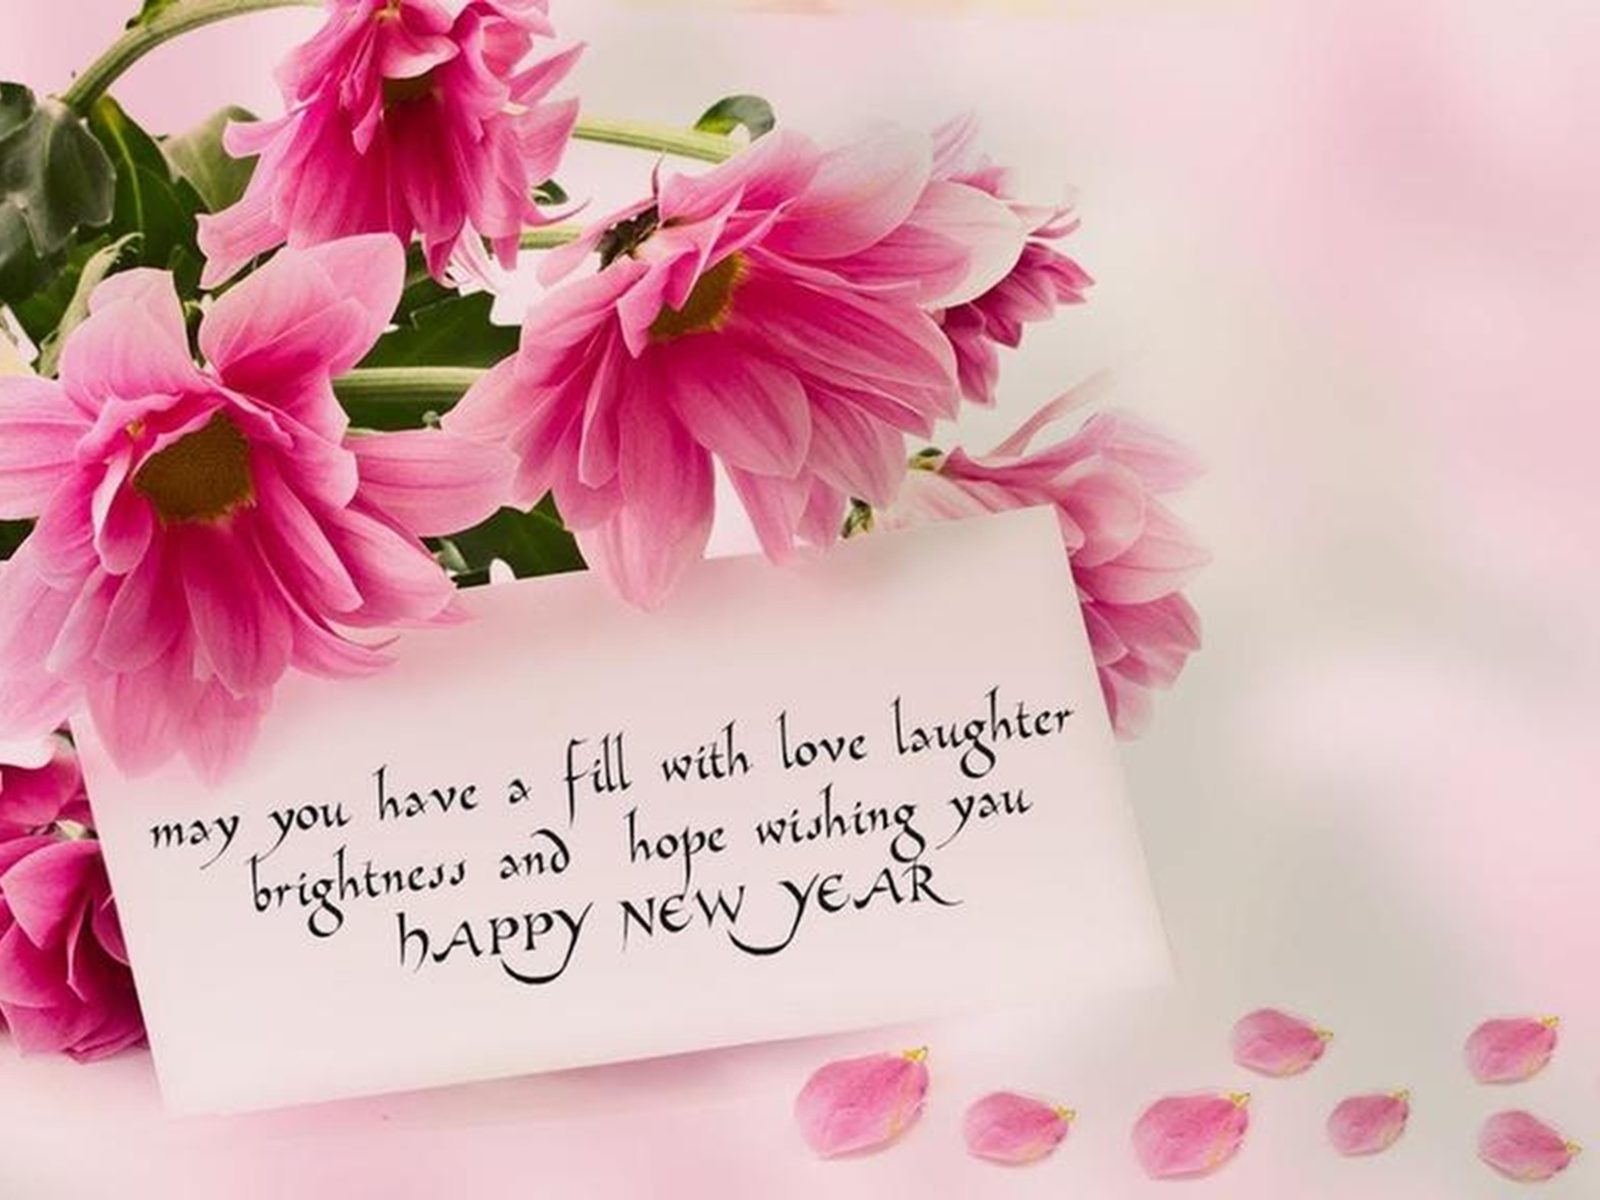 Happy New Year 2020 Rose Flowers Love Wallpapers Hd 5120x2880 1600x1200